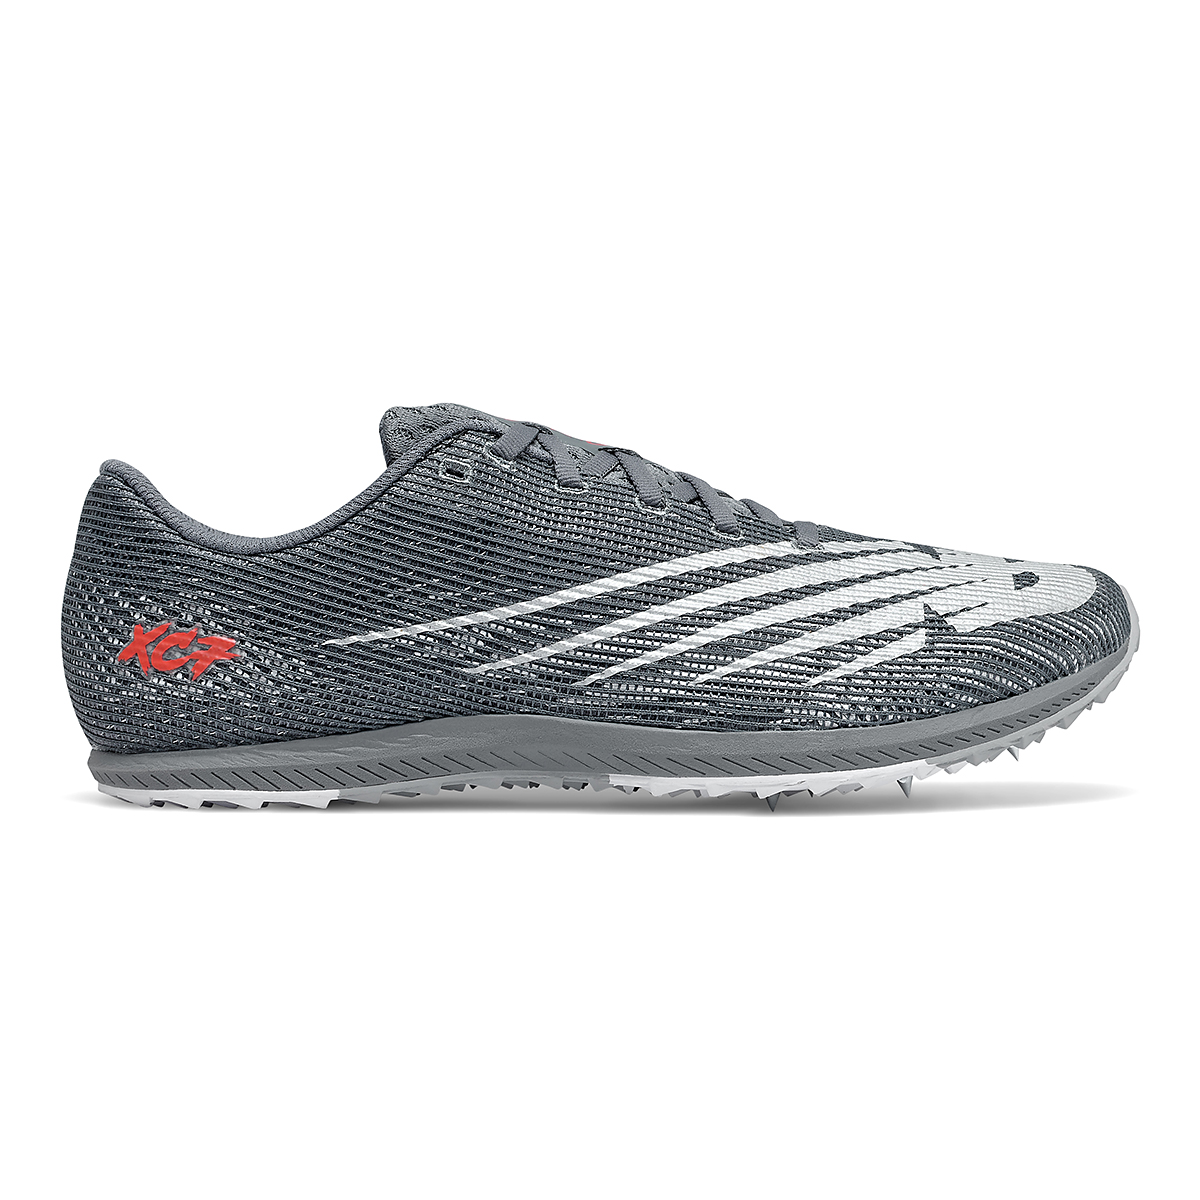 Men's New Balance XC Seven v3 Track Spikes - Color: Lead/Silver Metallic - Size: 4.5 - Width: Regular, Lead/Silver Metallic, large, image 1